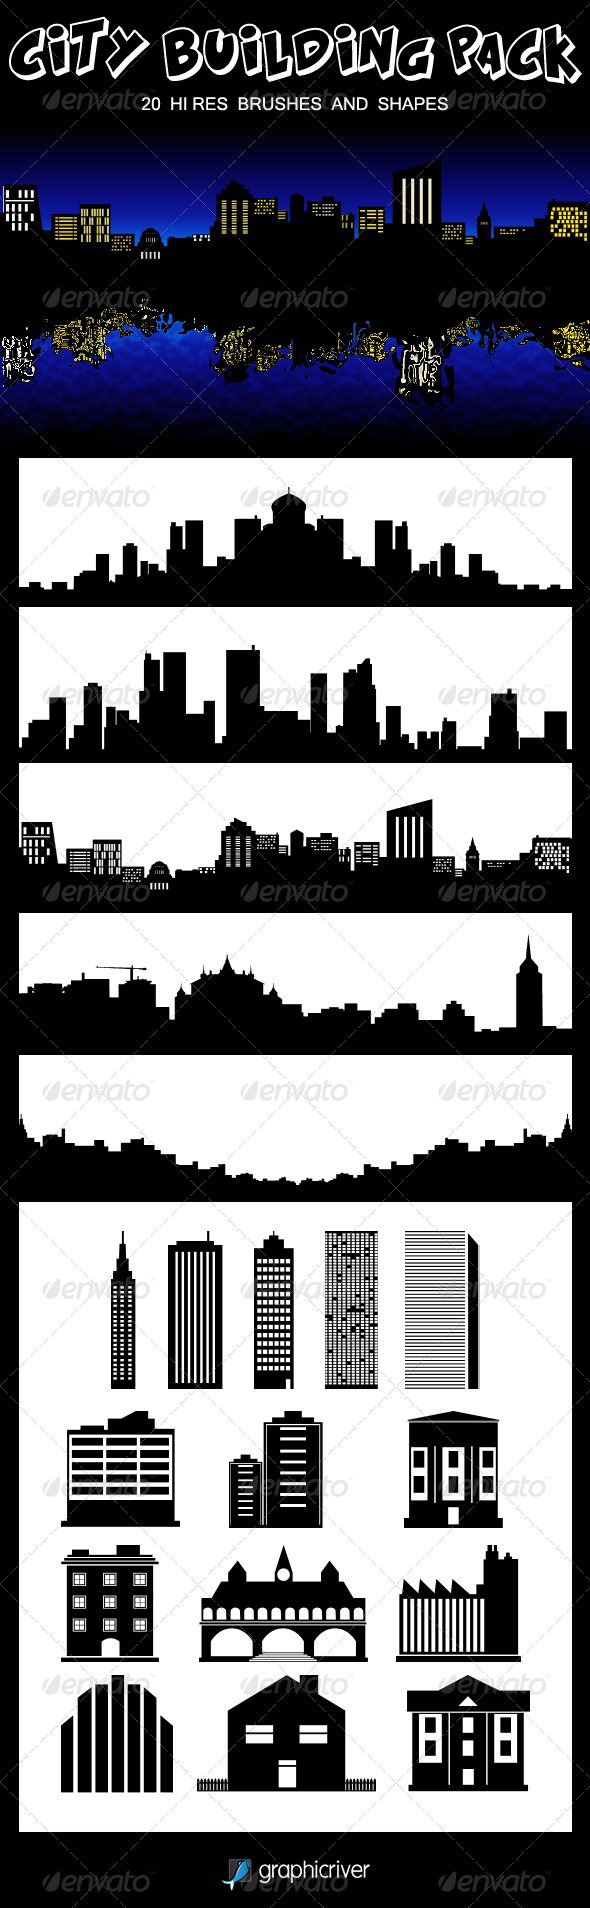 City Building Pack - Brushes Photoshop